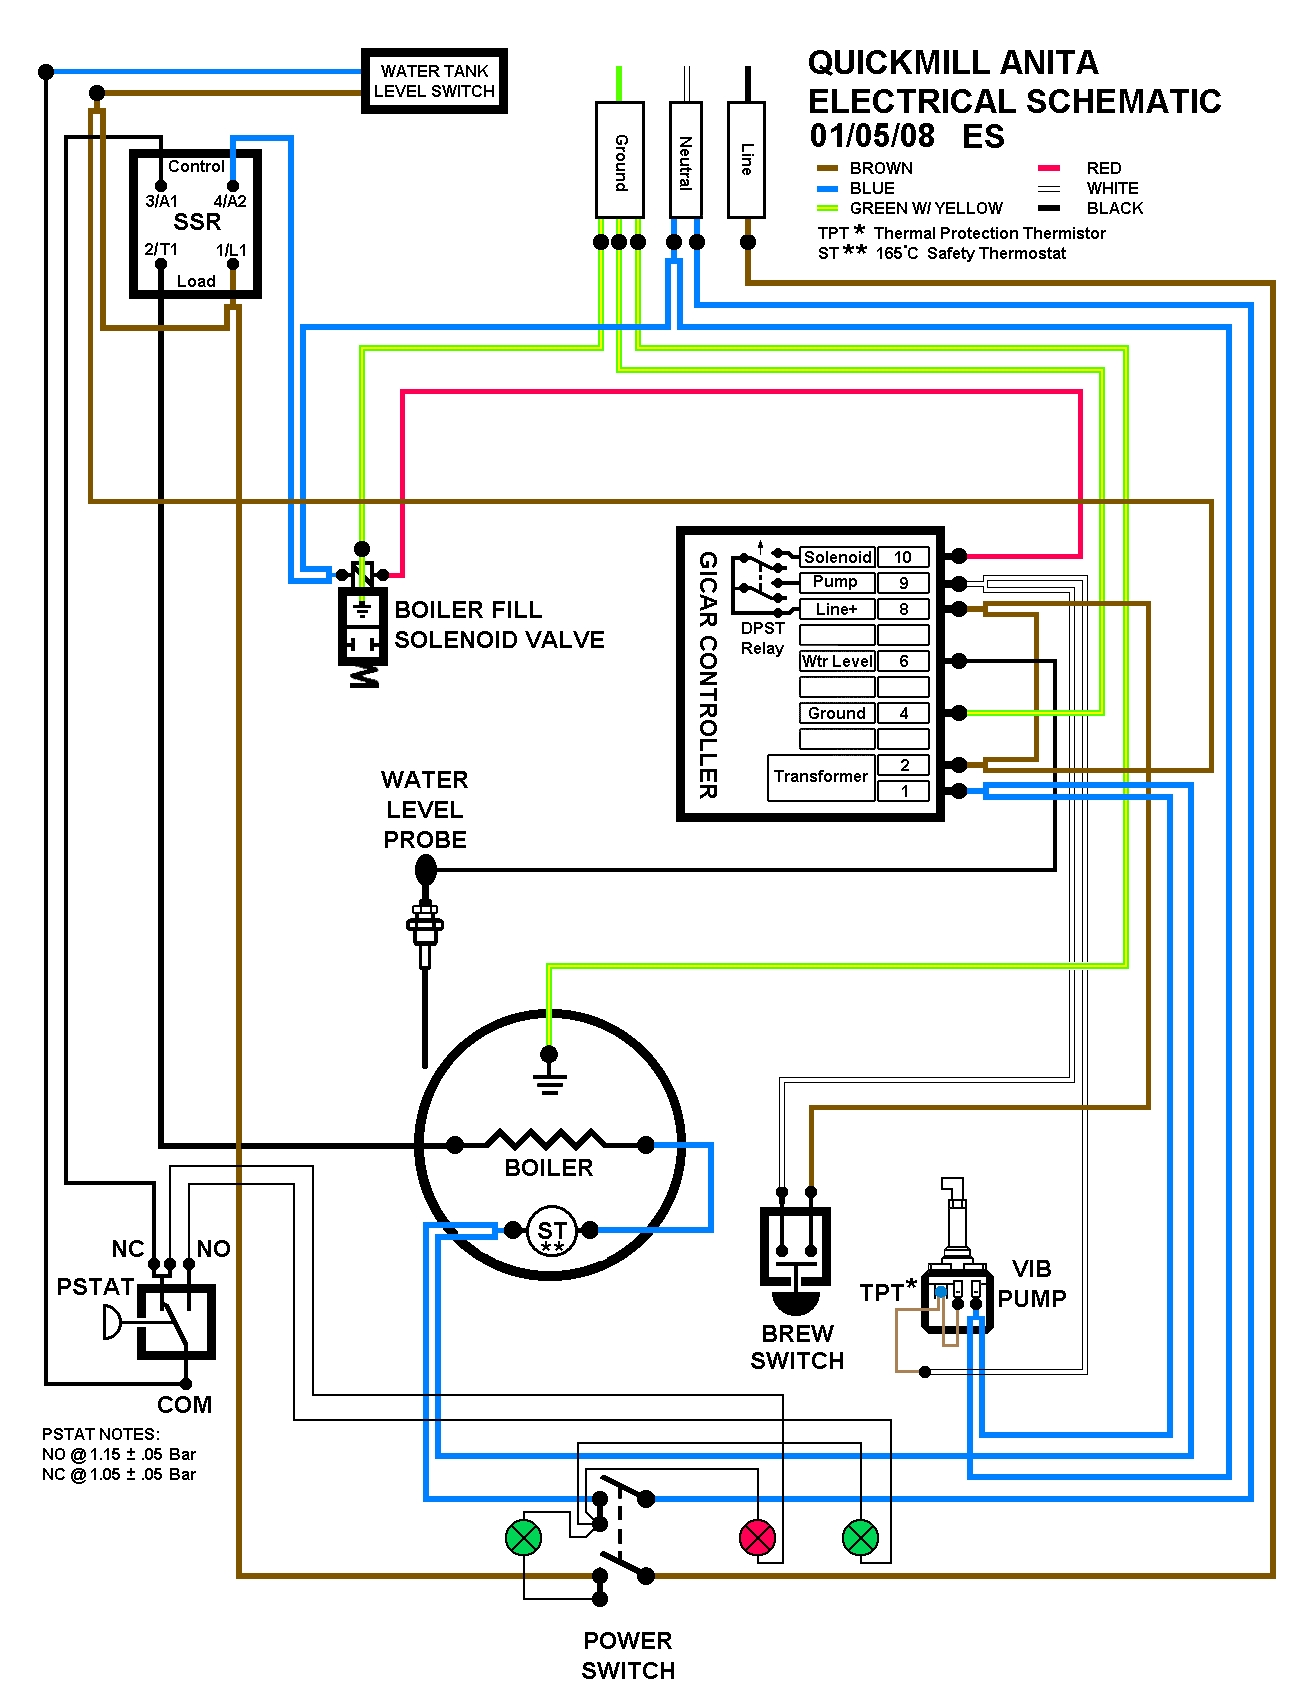 Fine Tsb Lookup Tiny Bdneww Rectangular 4pdt Switch Schematic Strat Hss Wiring Young Guitar 3 Way Switch PinkGibson 3 Way Switch Central Heating Wiring Diagrams \u2013 Readingrat